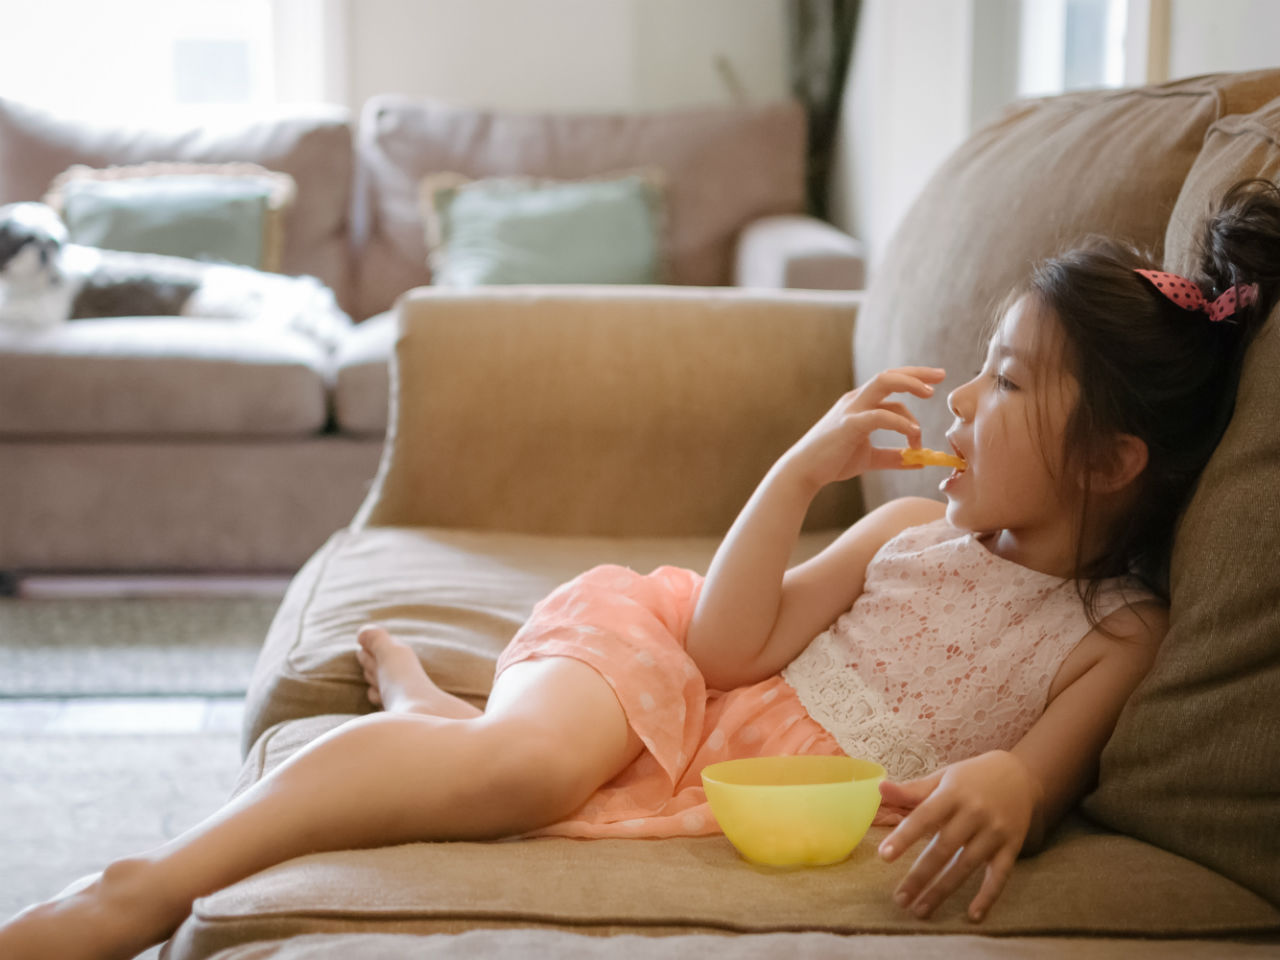 Little girl watching TV and eating chips